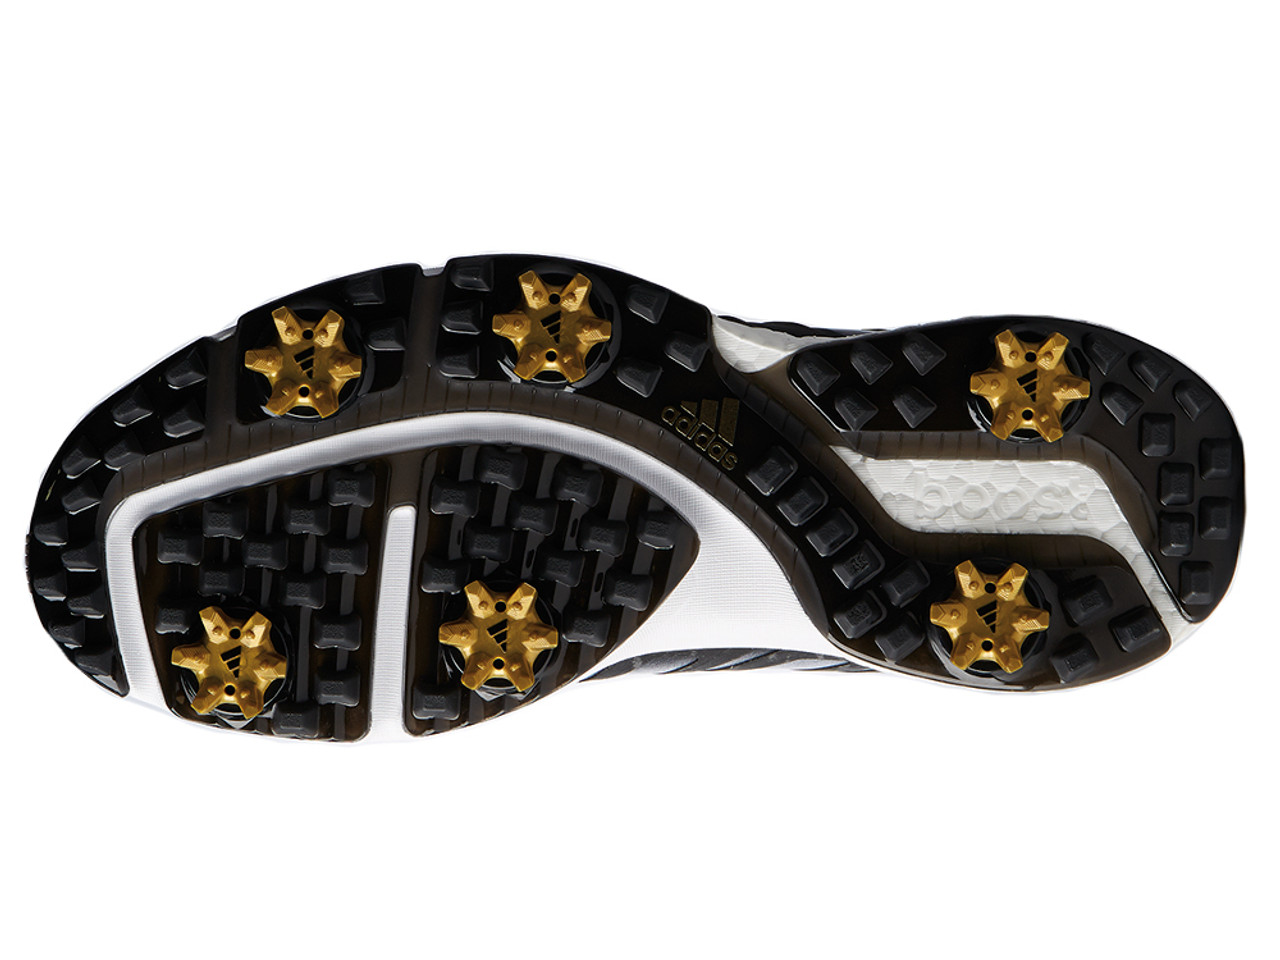 new product e0985 e6d88 Adidas Powerband BOA Boost Golf Shoes - Core Black Gold Met.